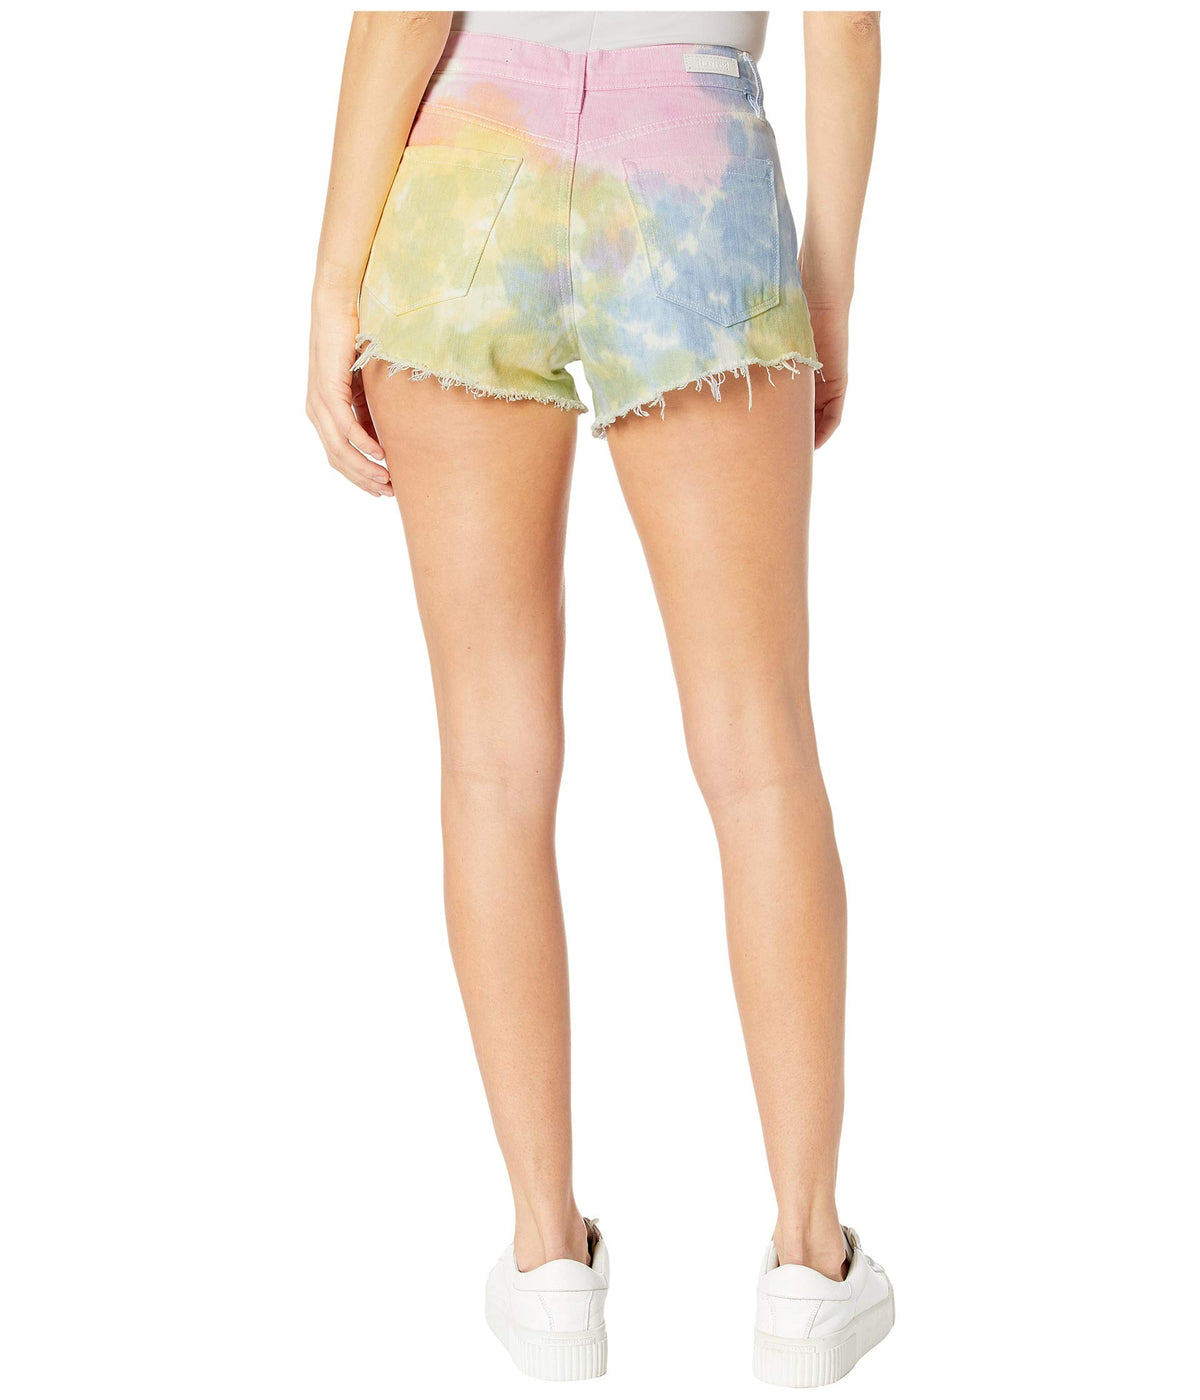 The Barrow Hi Rise Tie-Dye Shorts